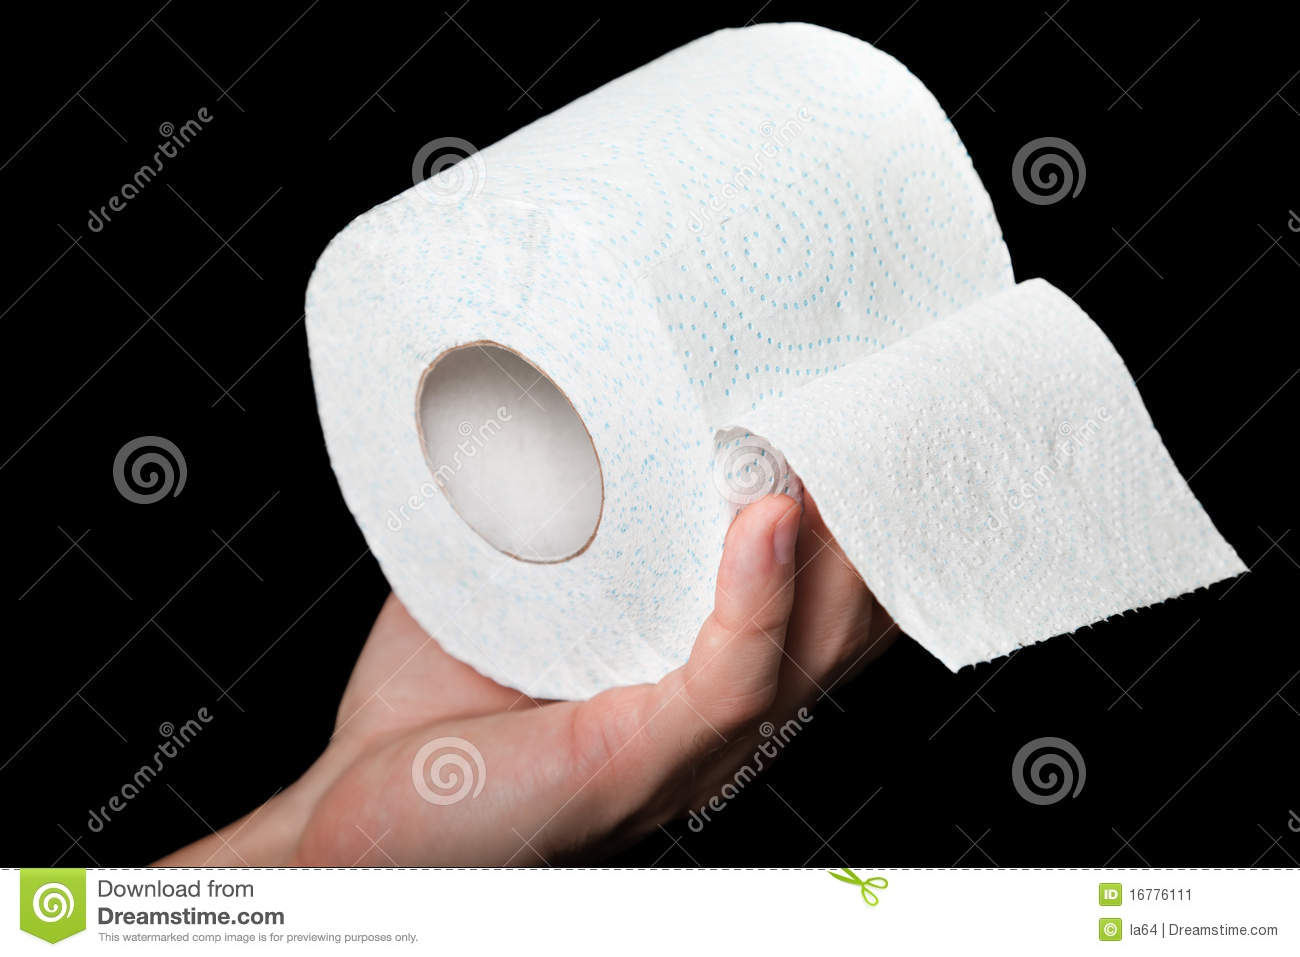 Toilet Paper In Hand Stock Image - Image: 16776111